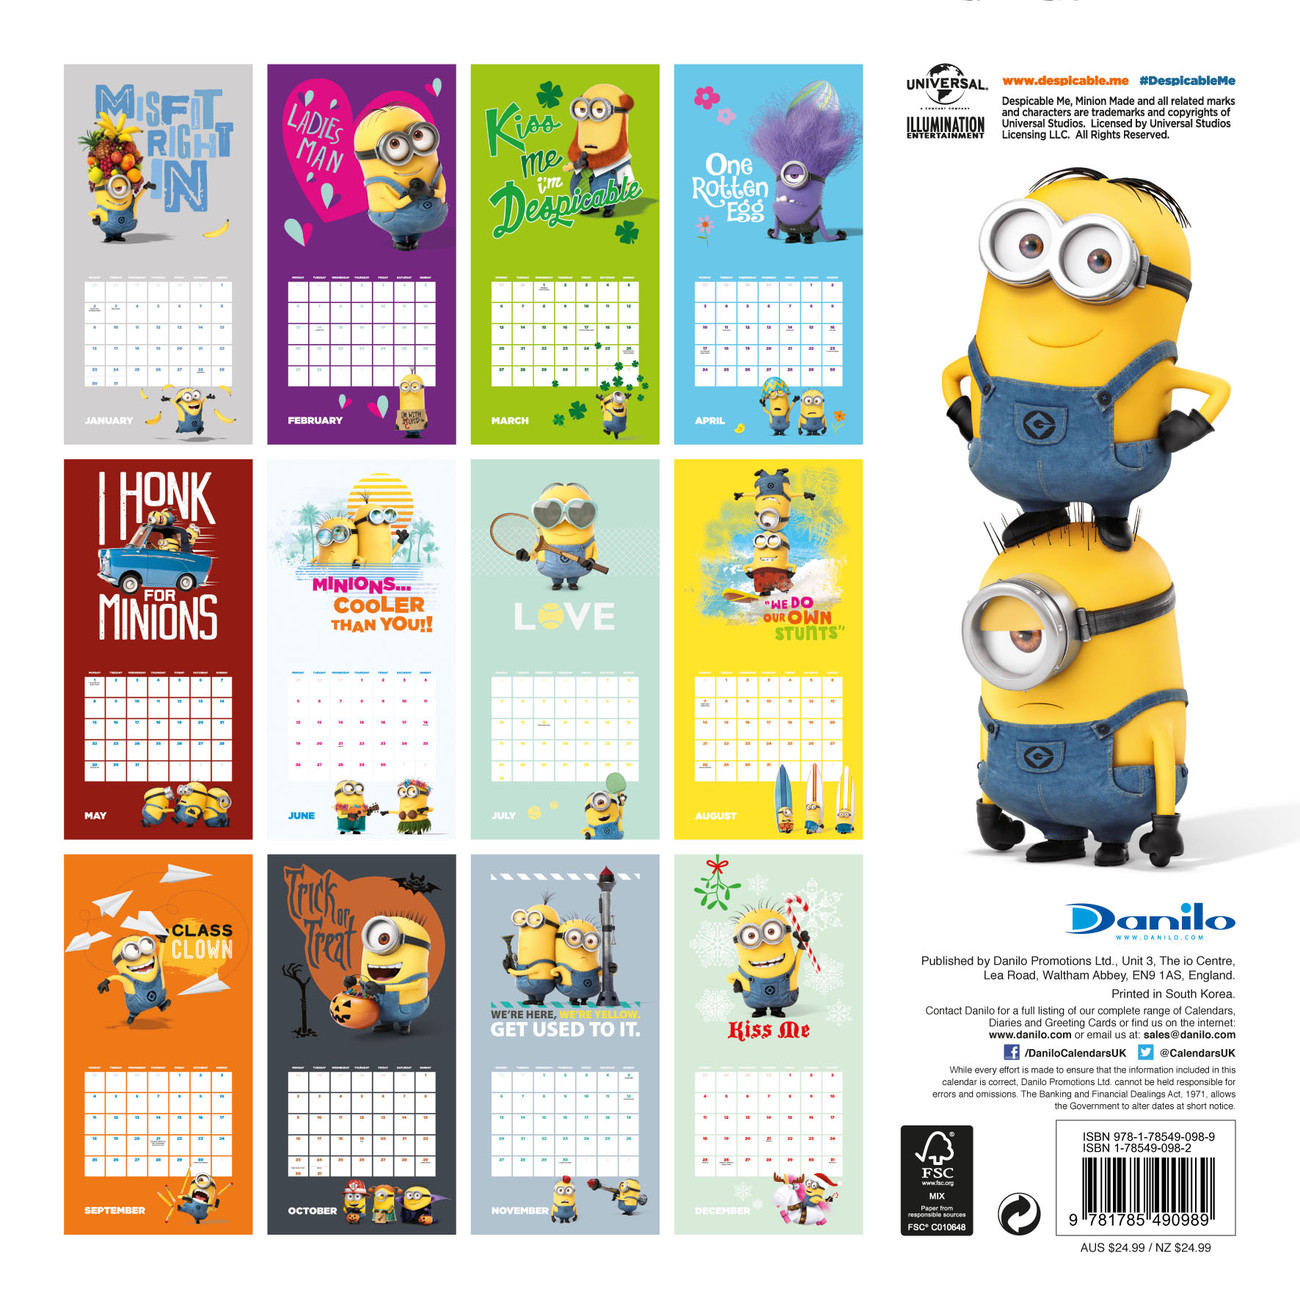 Minion Calendar 2020 Despicable me   Minions   Calendars 2020 on UKposters/Abposters.com